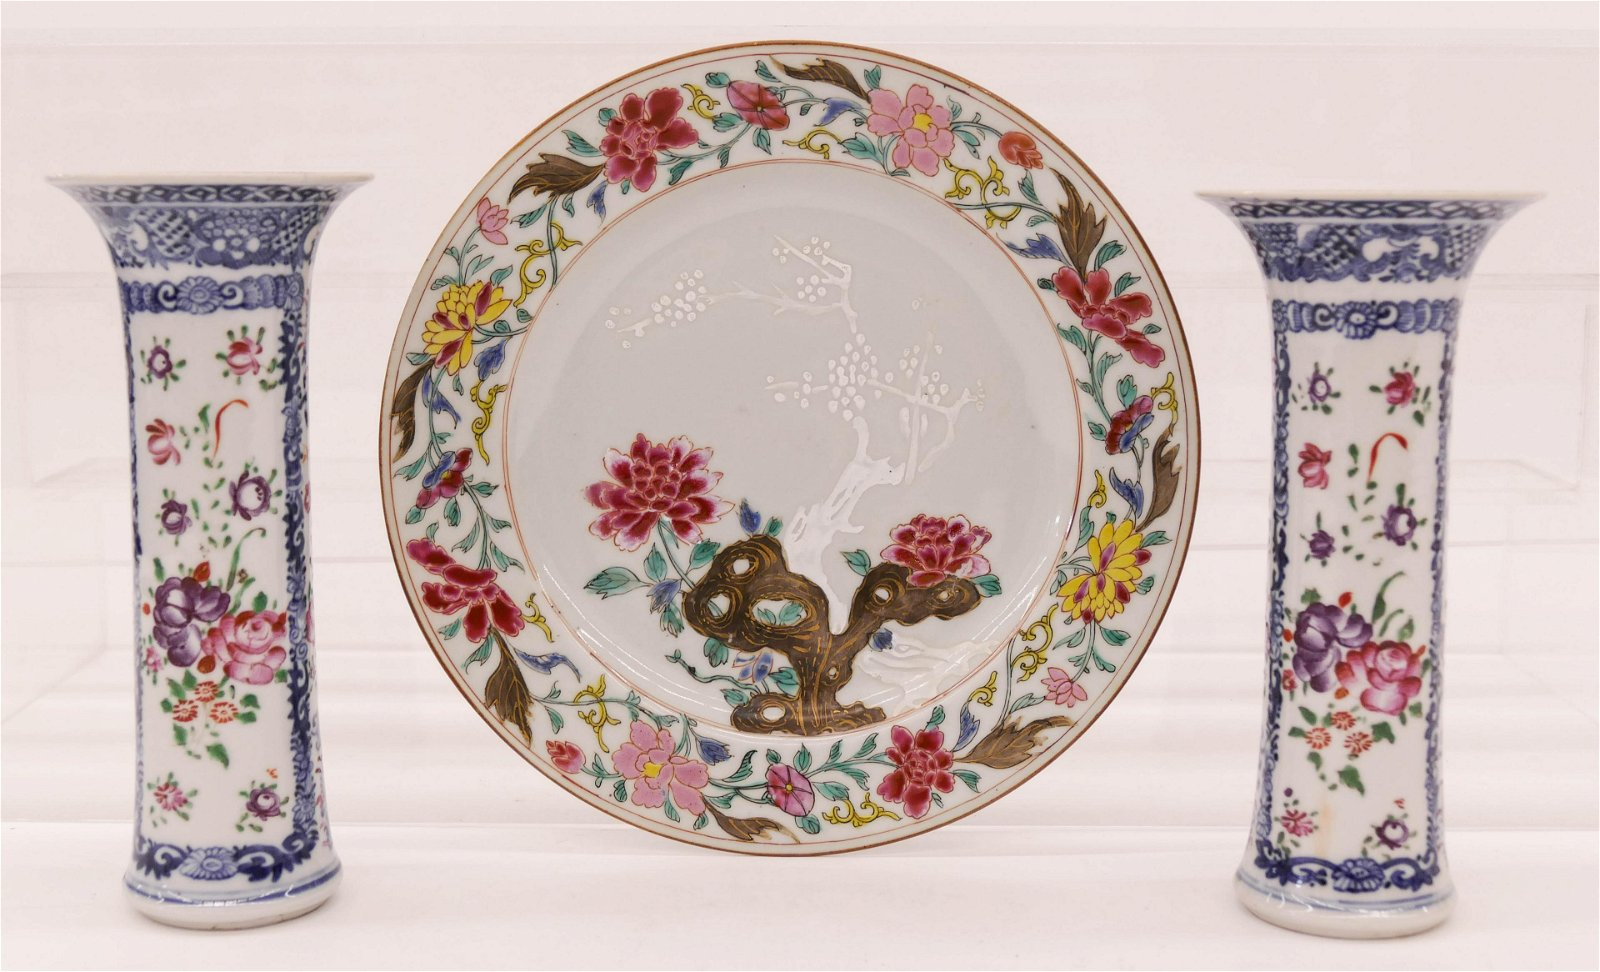 3pc Chinese 18th Cent. Export Porcelain Vases & Plate.